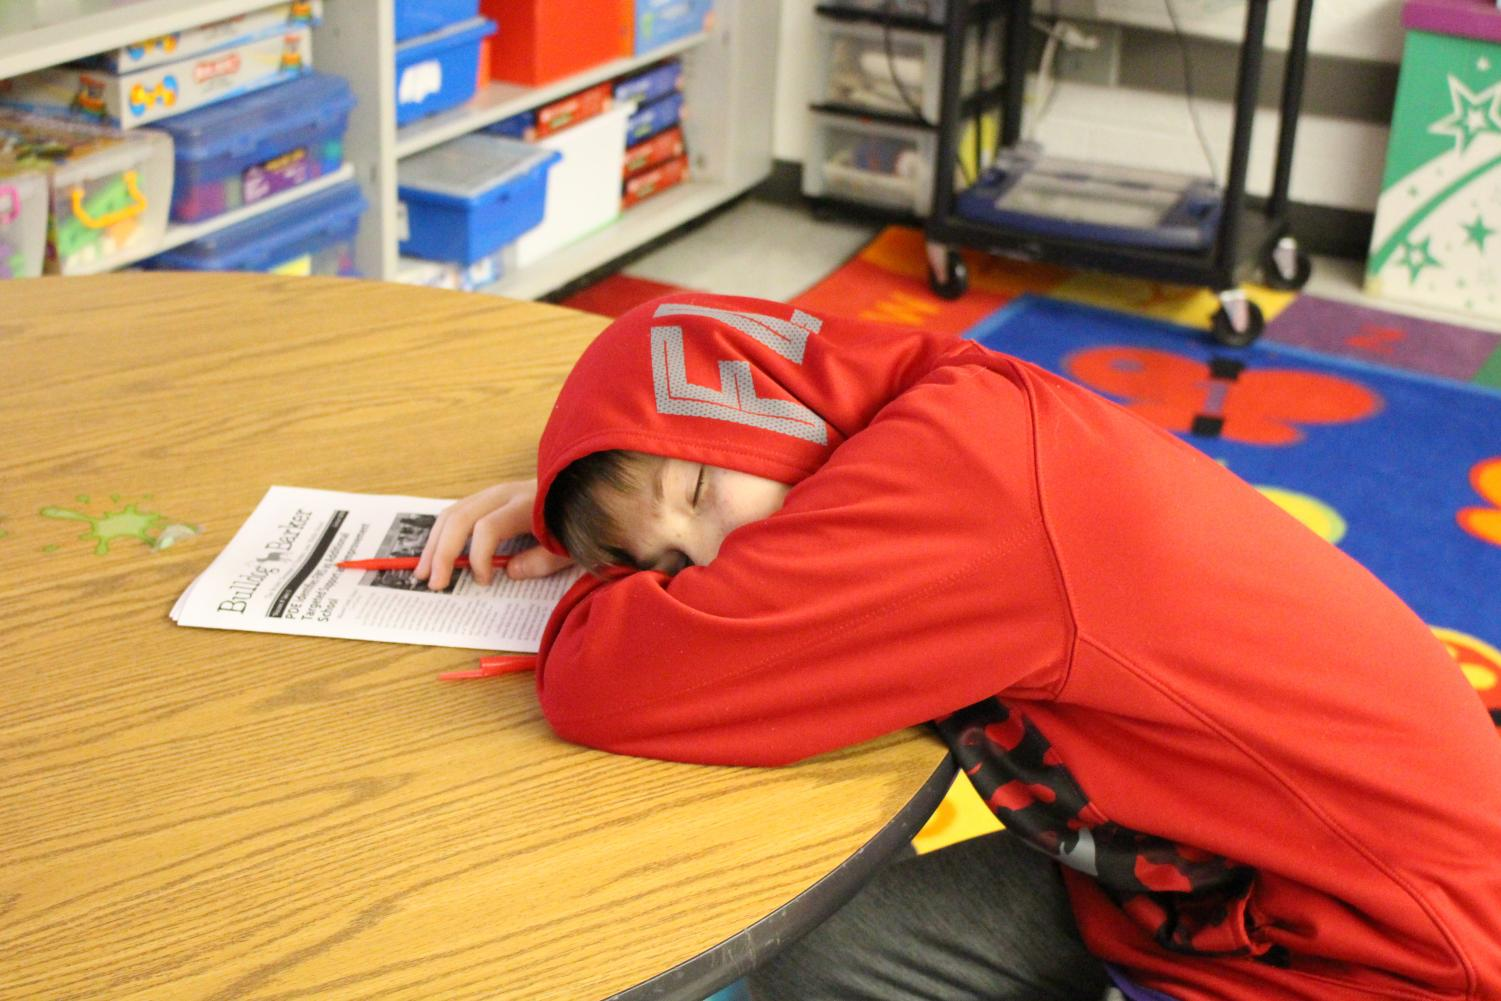 Sixth grader Tyler Misencik falls asleep while editing newspaper articles on Feb. 6 due to lack of sleep.